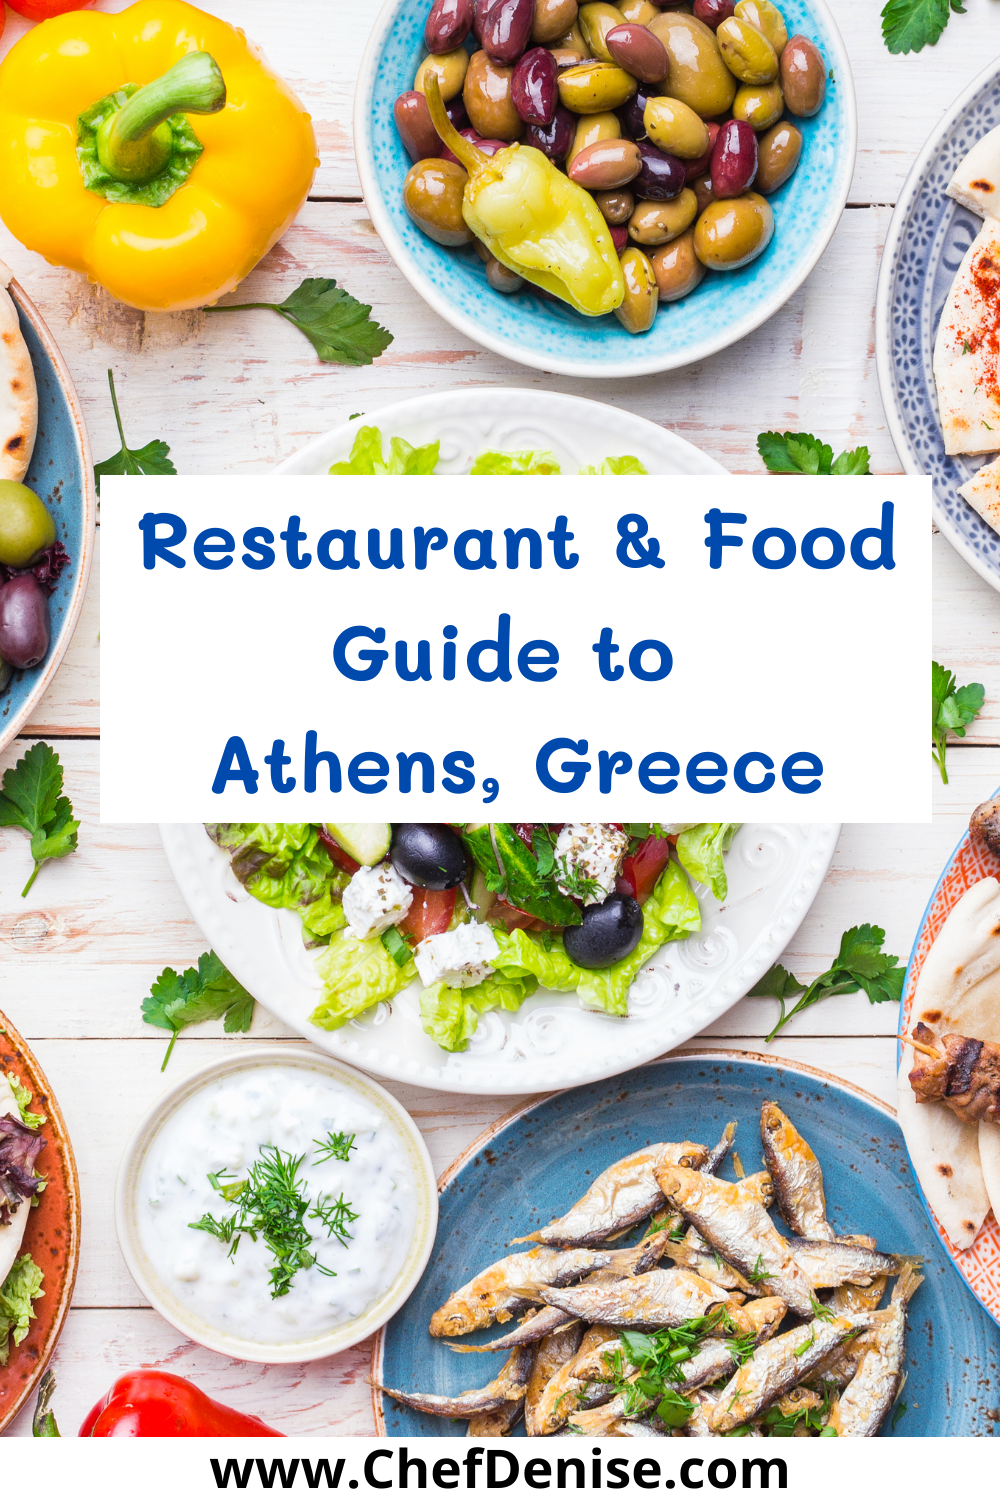 Pin for Restaurant & Food Guide to Athens, Greece